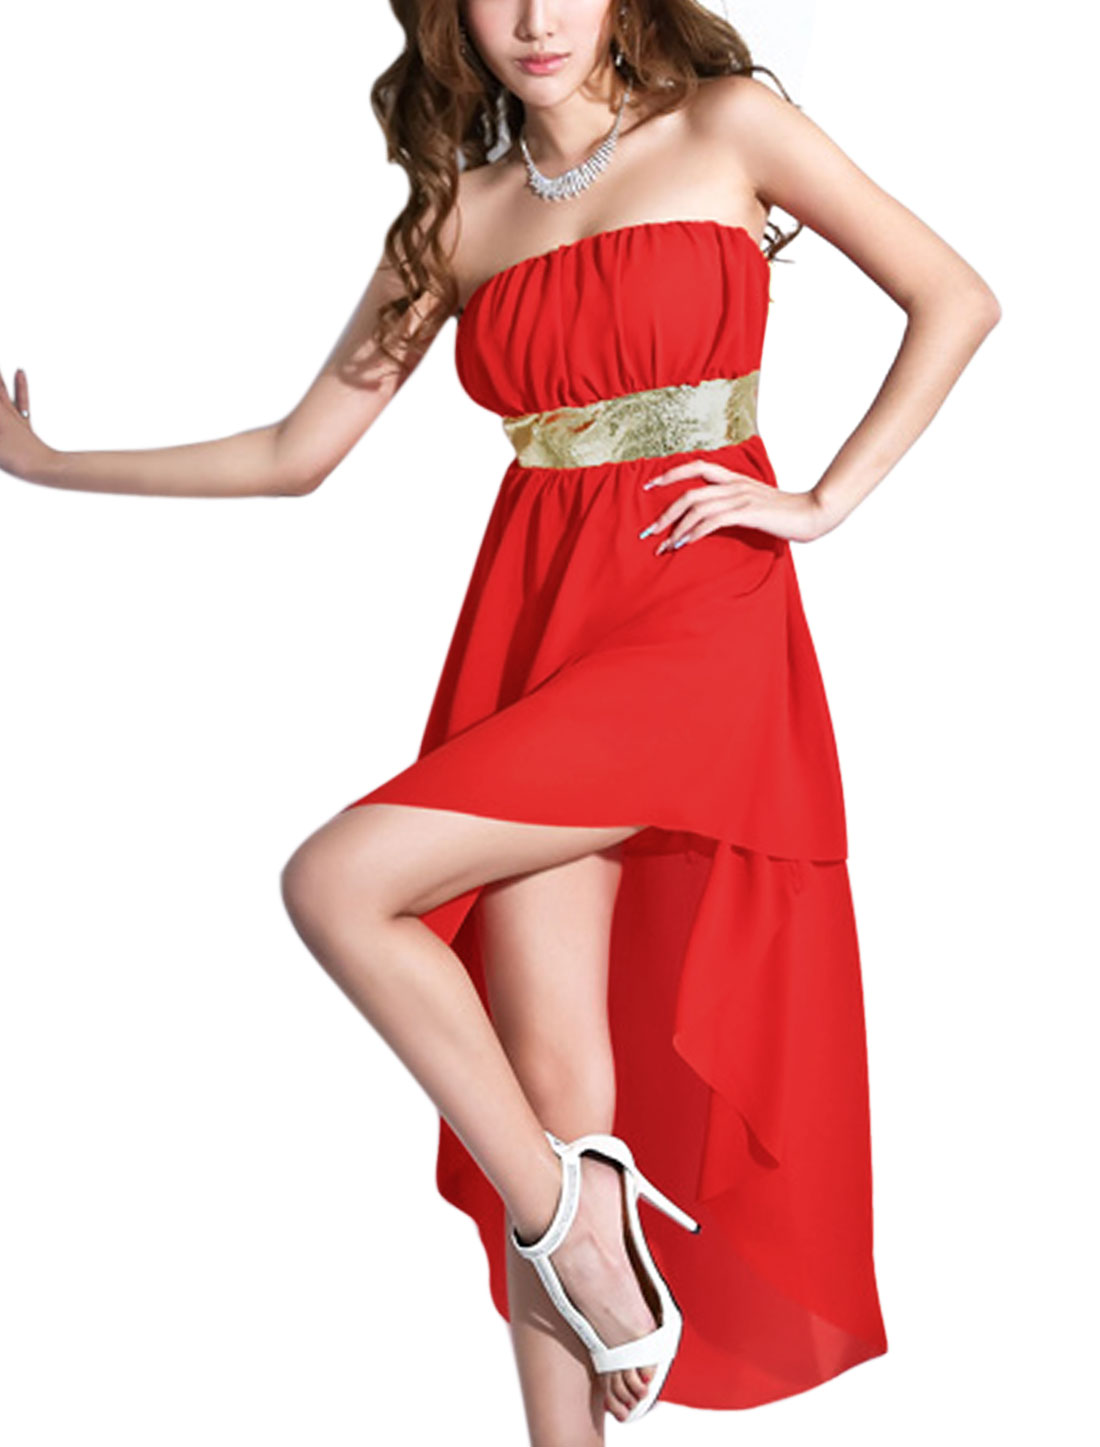 Lady Stretch Waist Glitter Detail Full Lined Chiffon Corset Dress Red XS